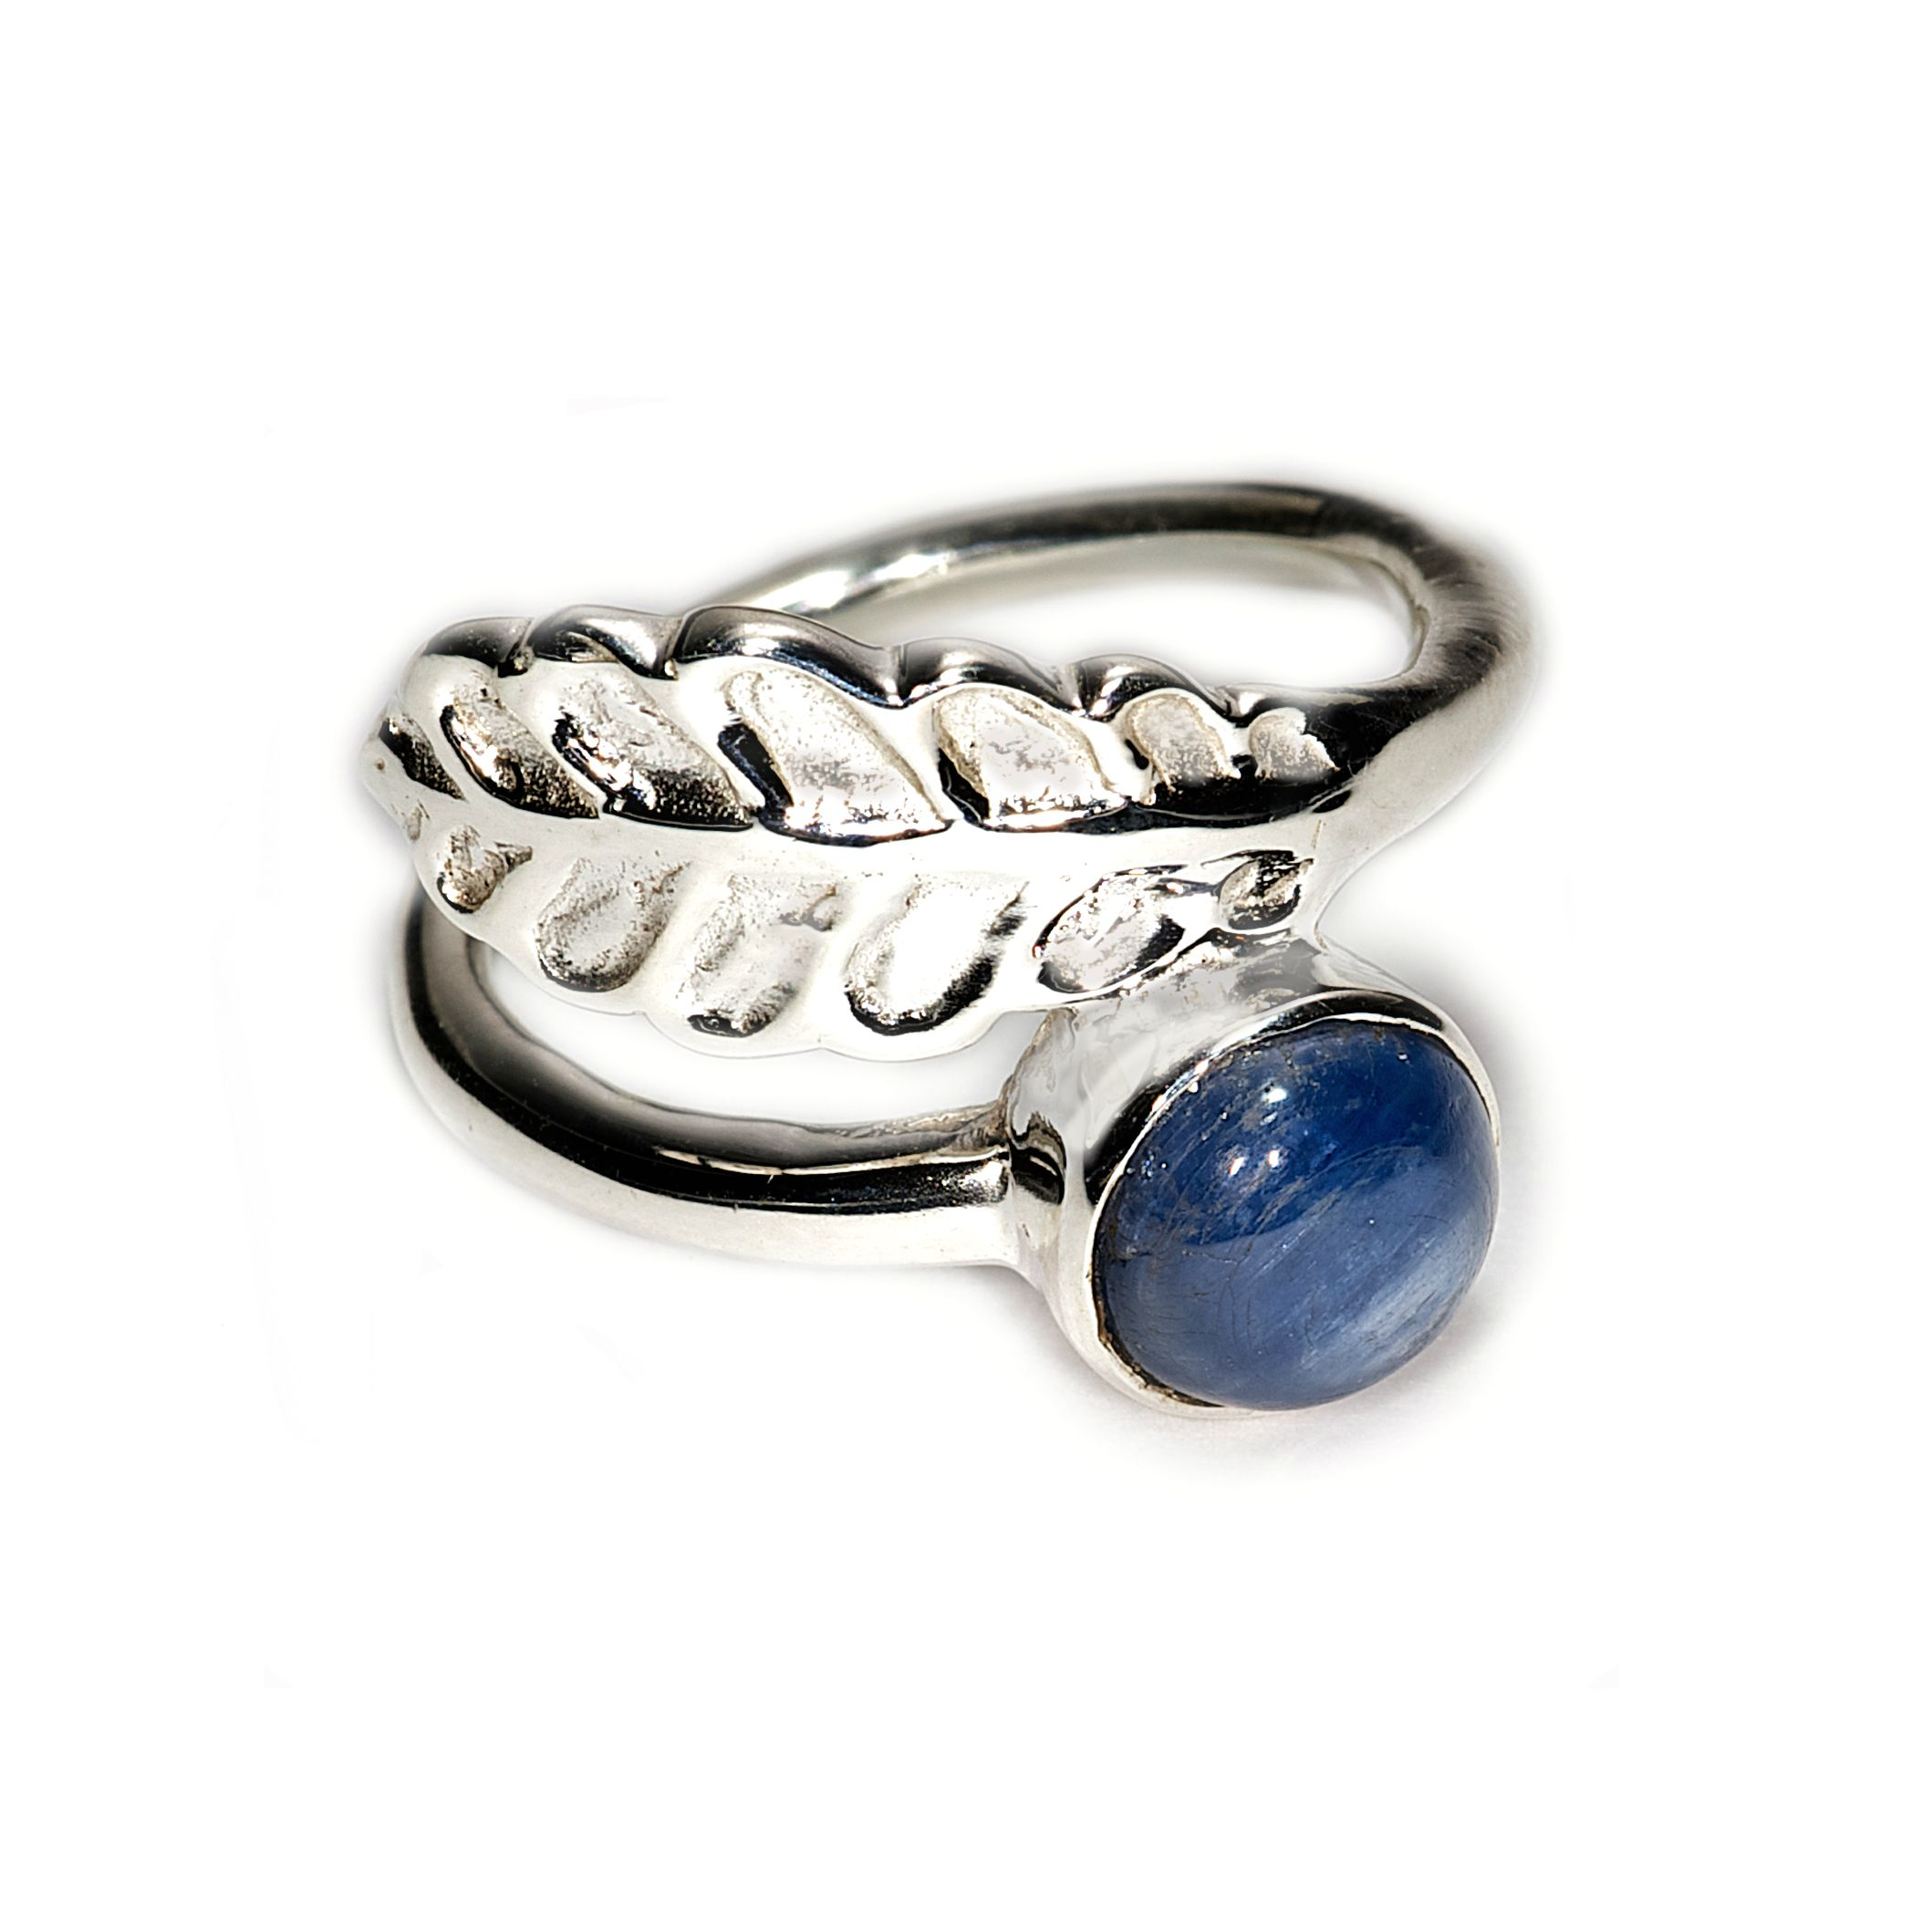 in solid store silver this kyanite ring from nepal sterling jali size jewelry quality set gem rings